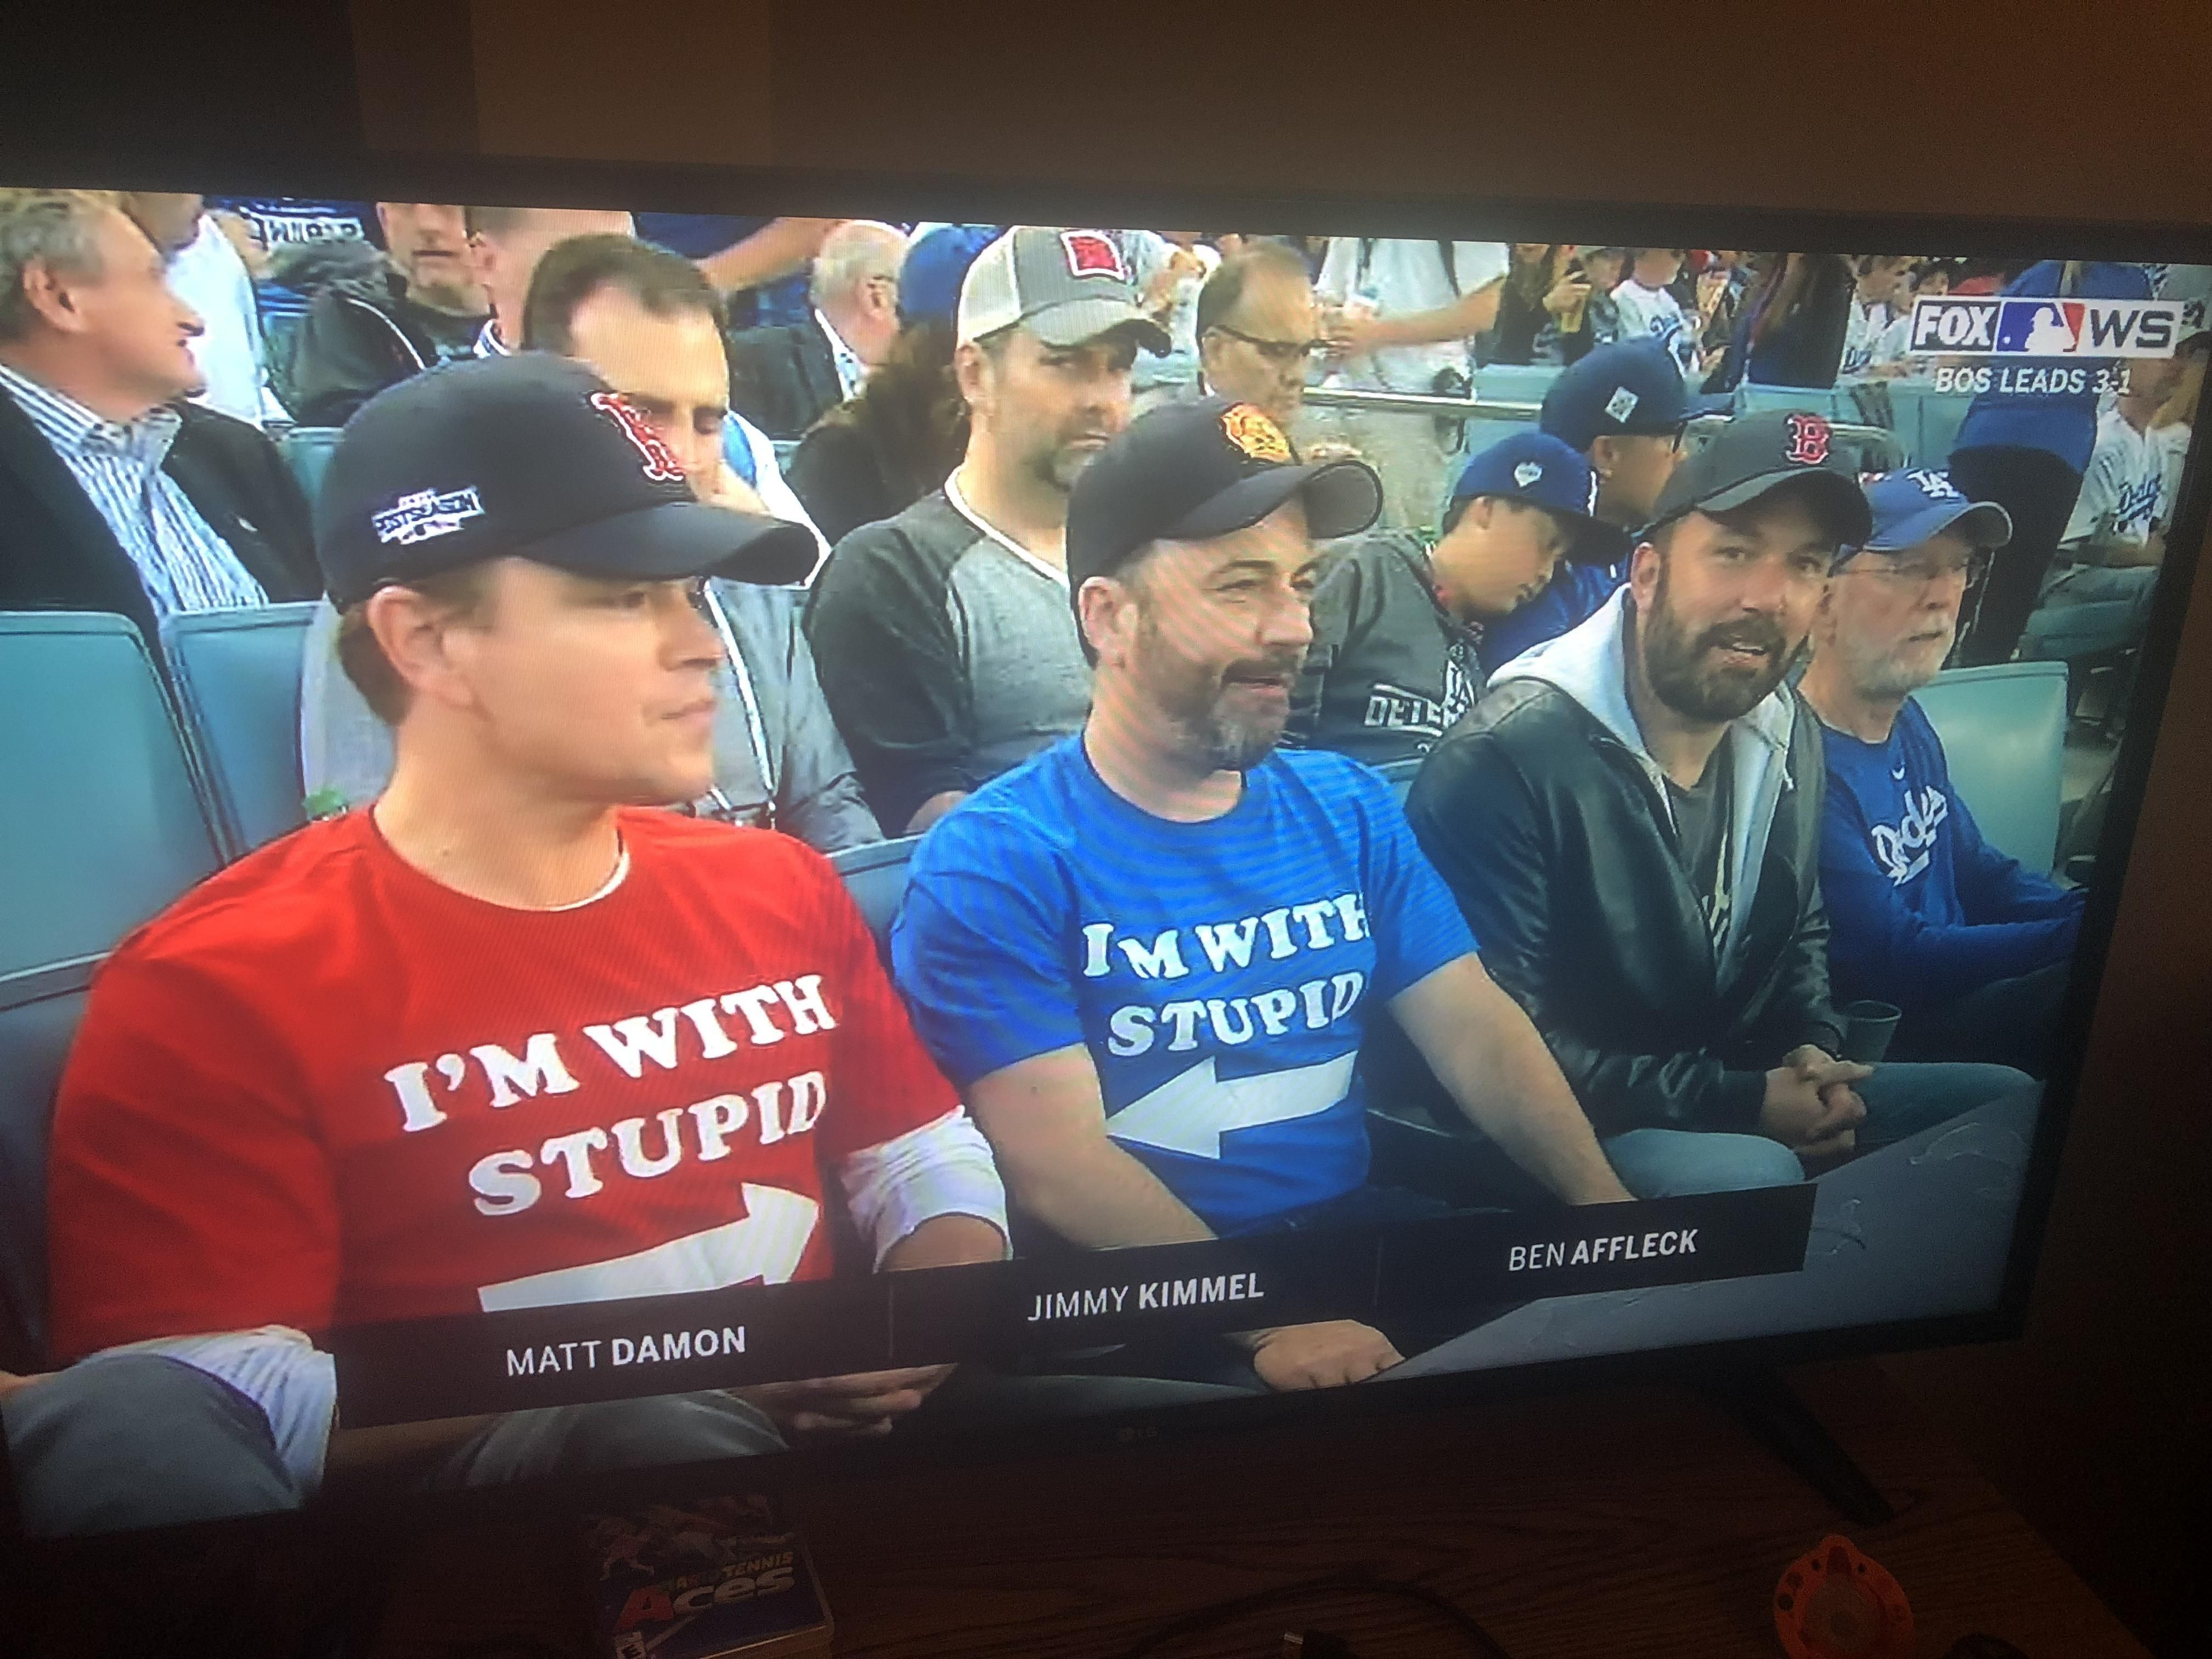 Proof that baseball can unite the worst of enemies